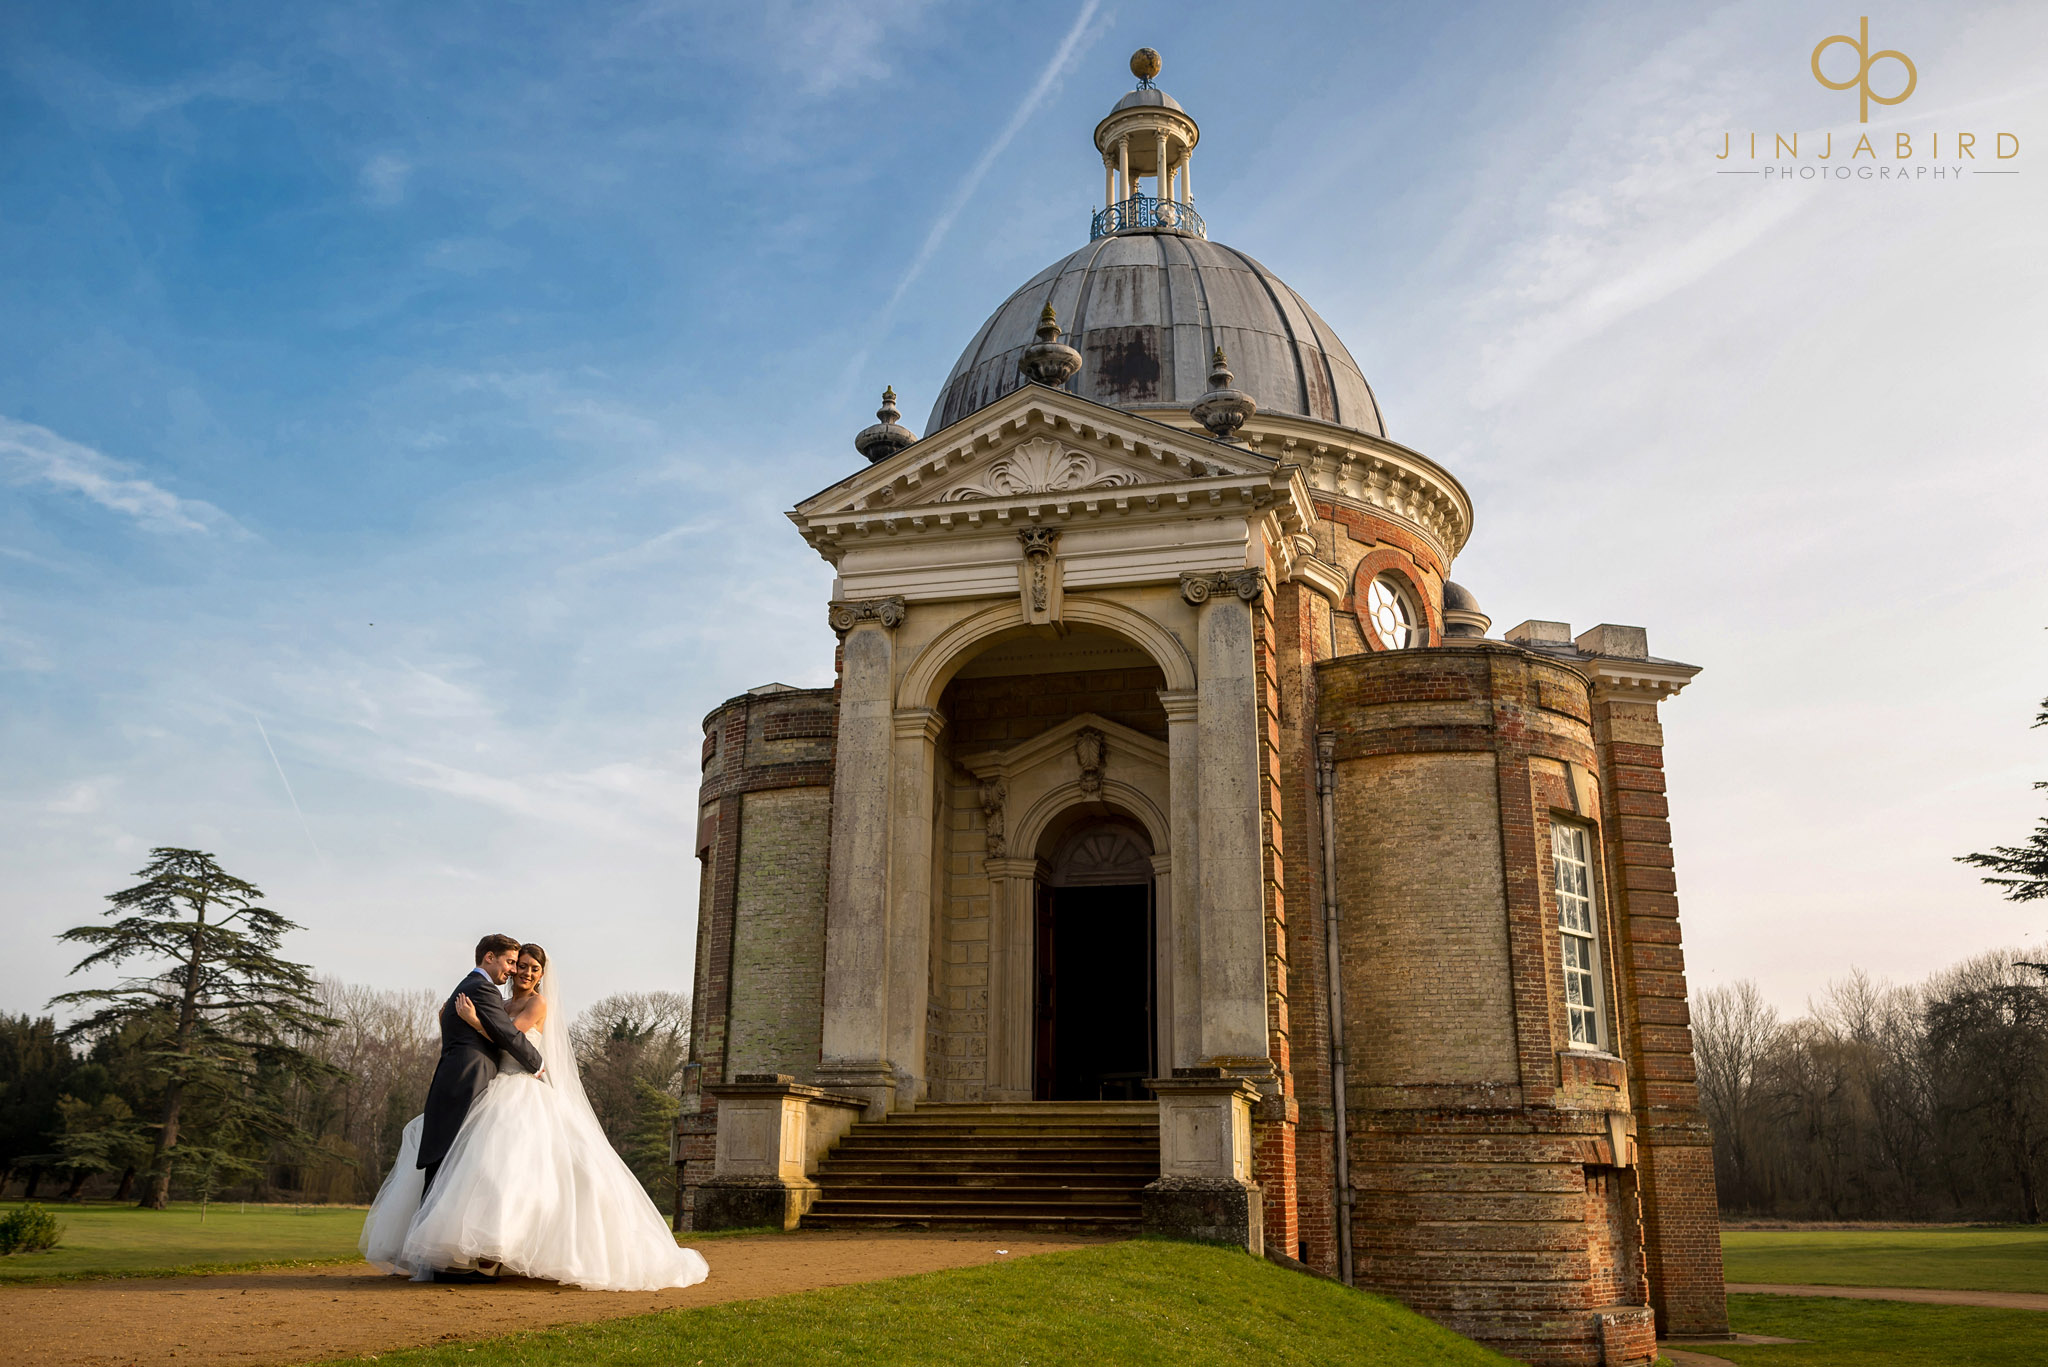 Wedding photographer Wrest Park